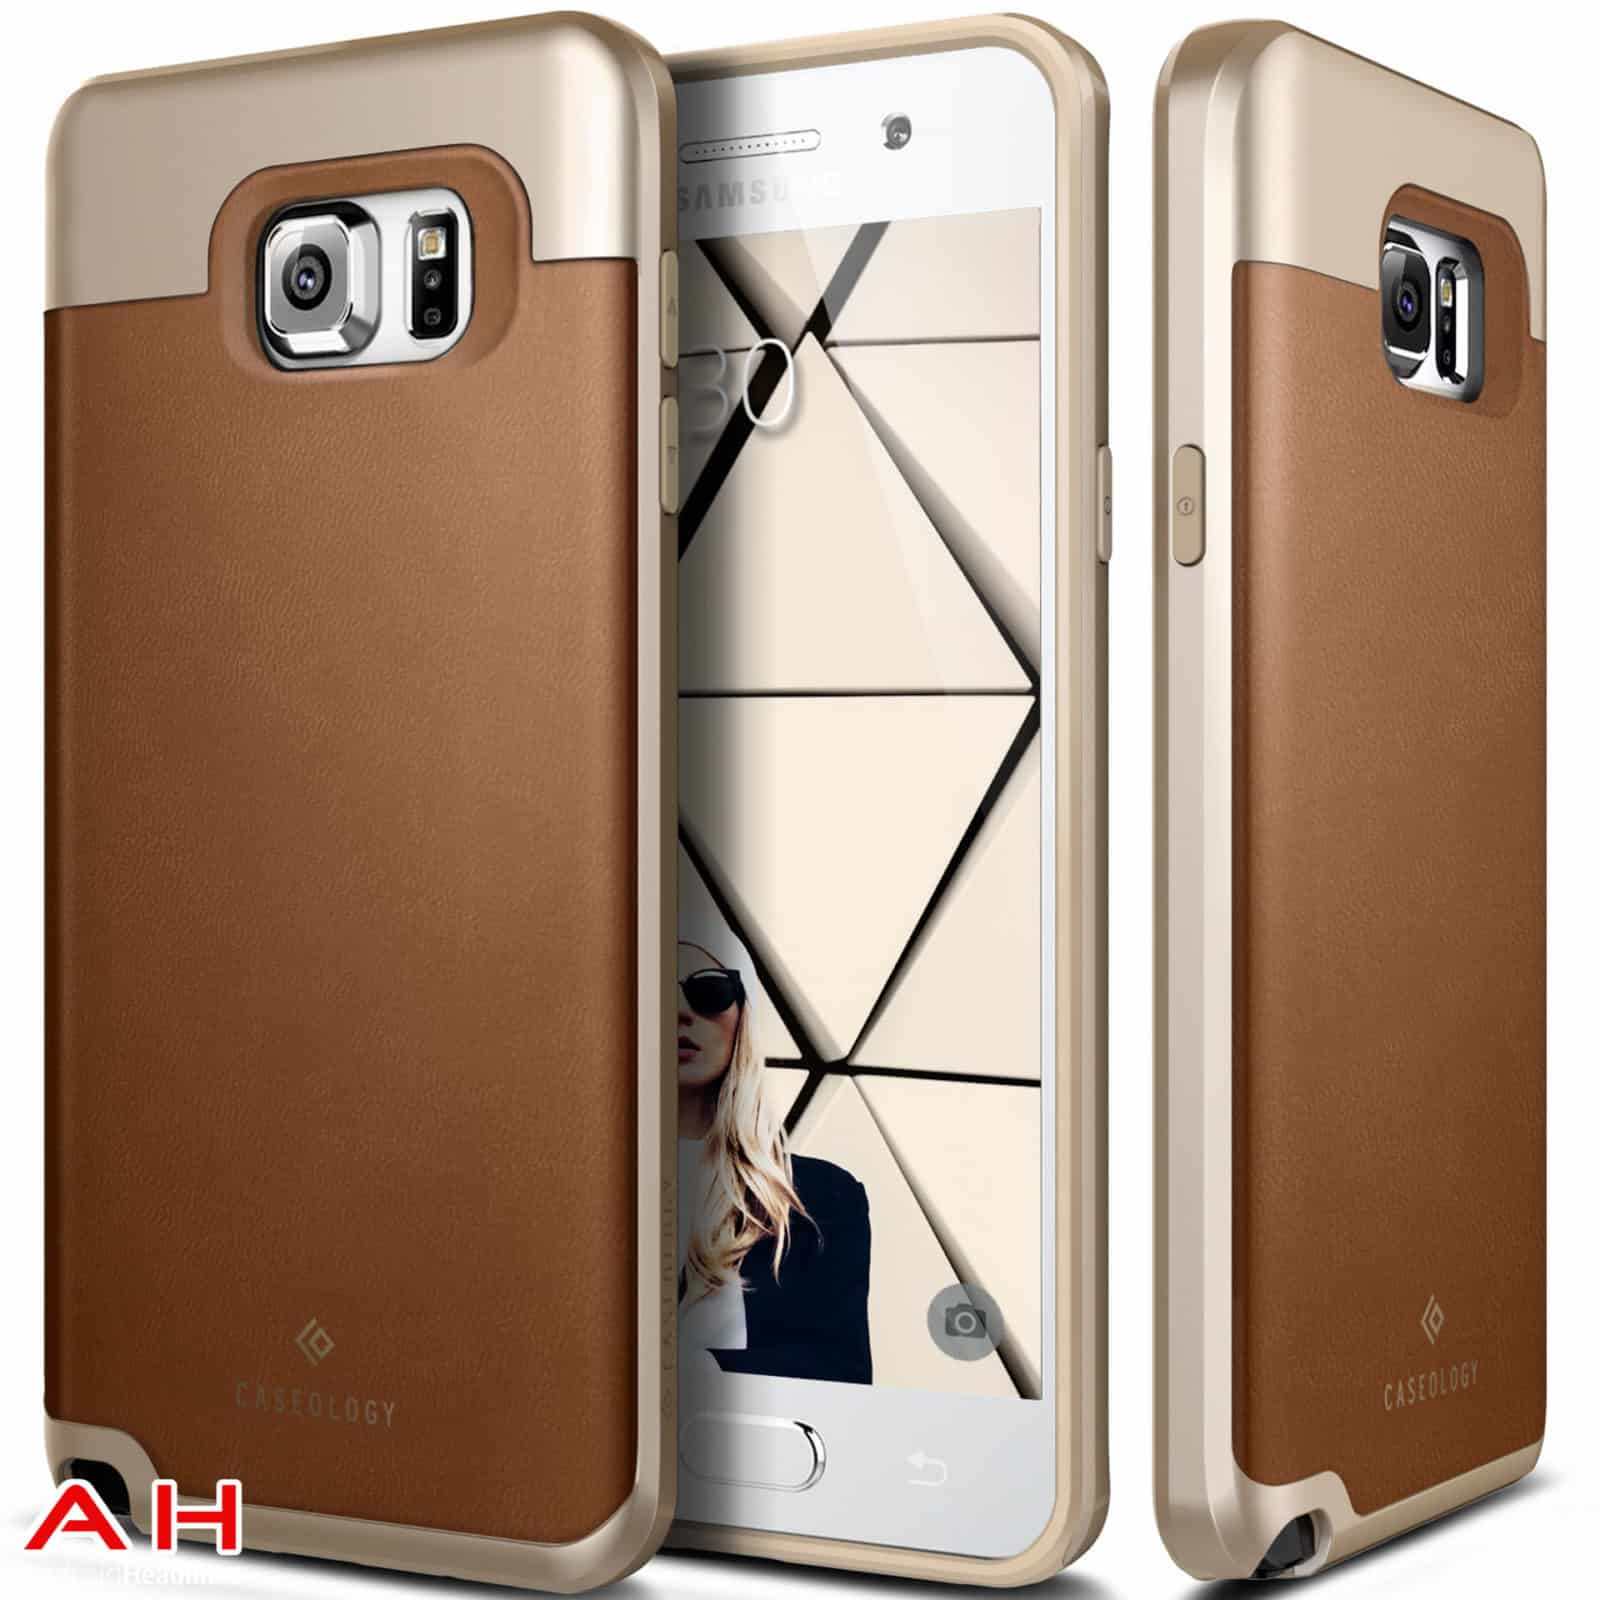 Caseology-Samsung-Galaxy-Note-5-AH-3